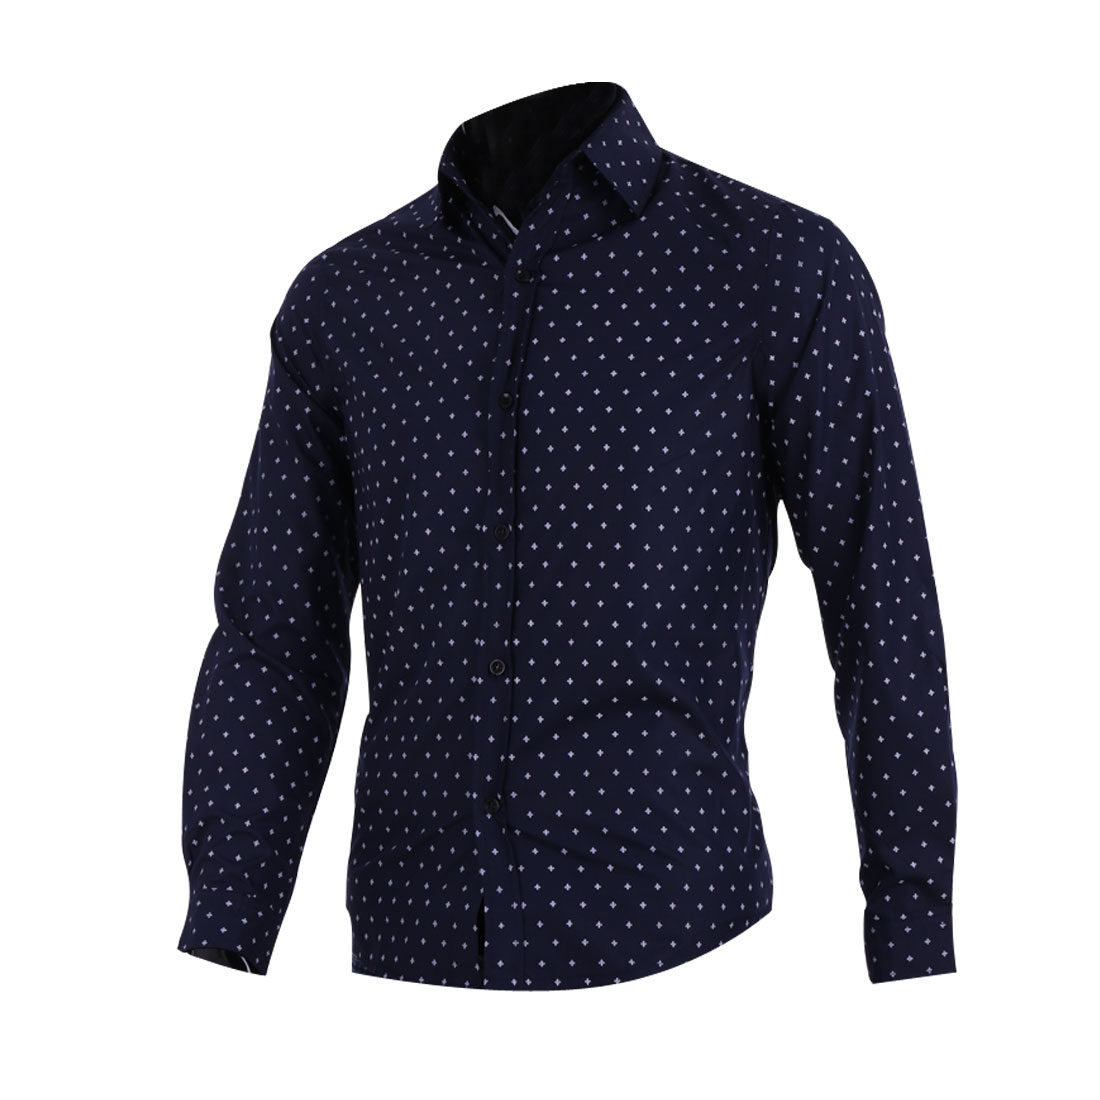 Mens Chic Point Collar Long Sleeve Novelty Prints Dark Blue Casual Shirt M